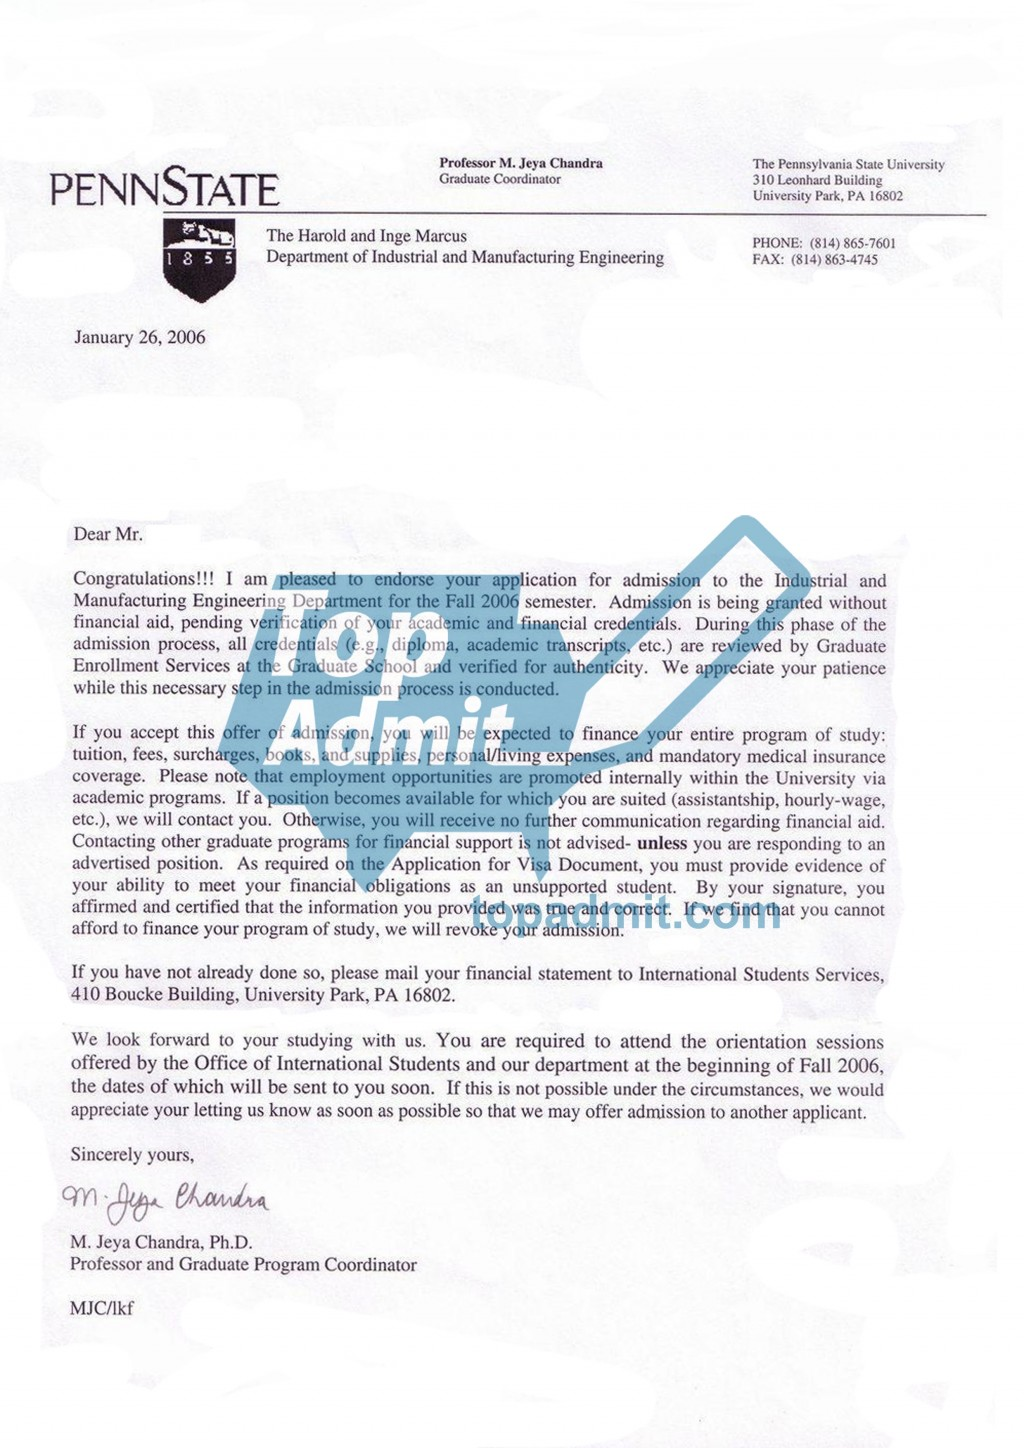 002 Essay Example Hyhigzw Penn Formidable State 2019 Topic Prompts Large